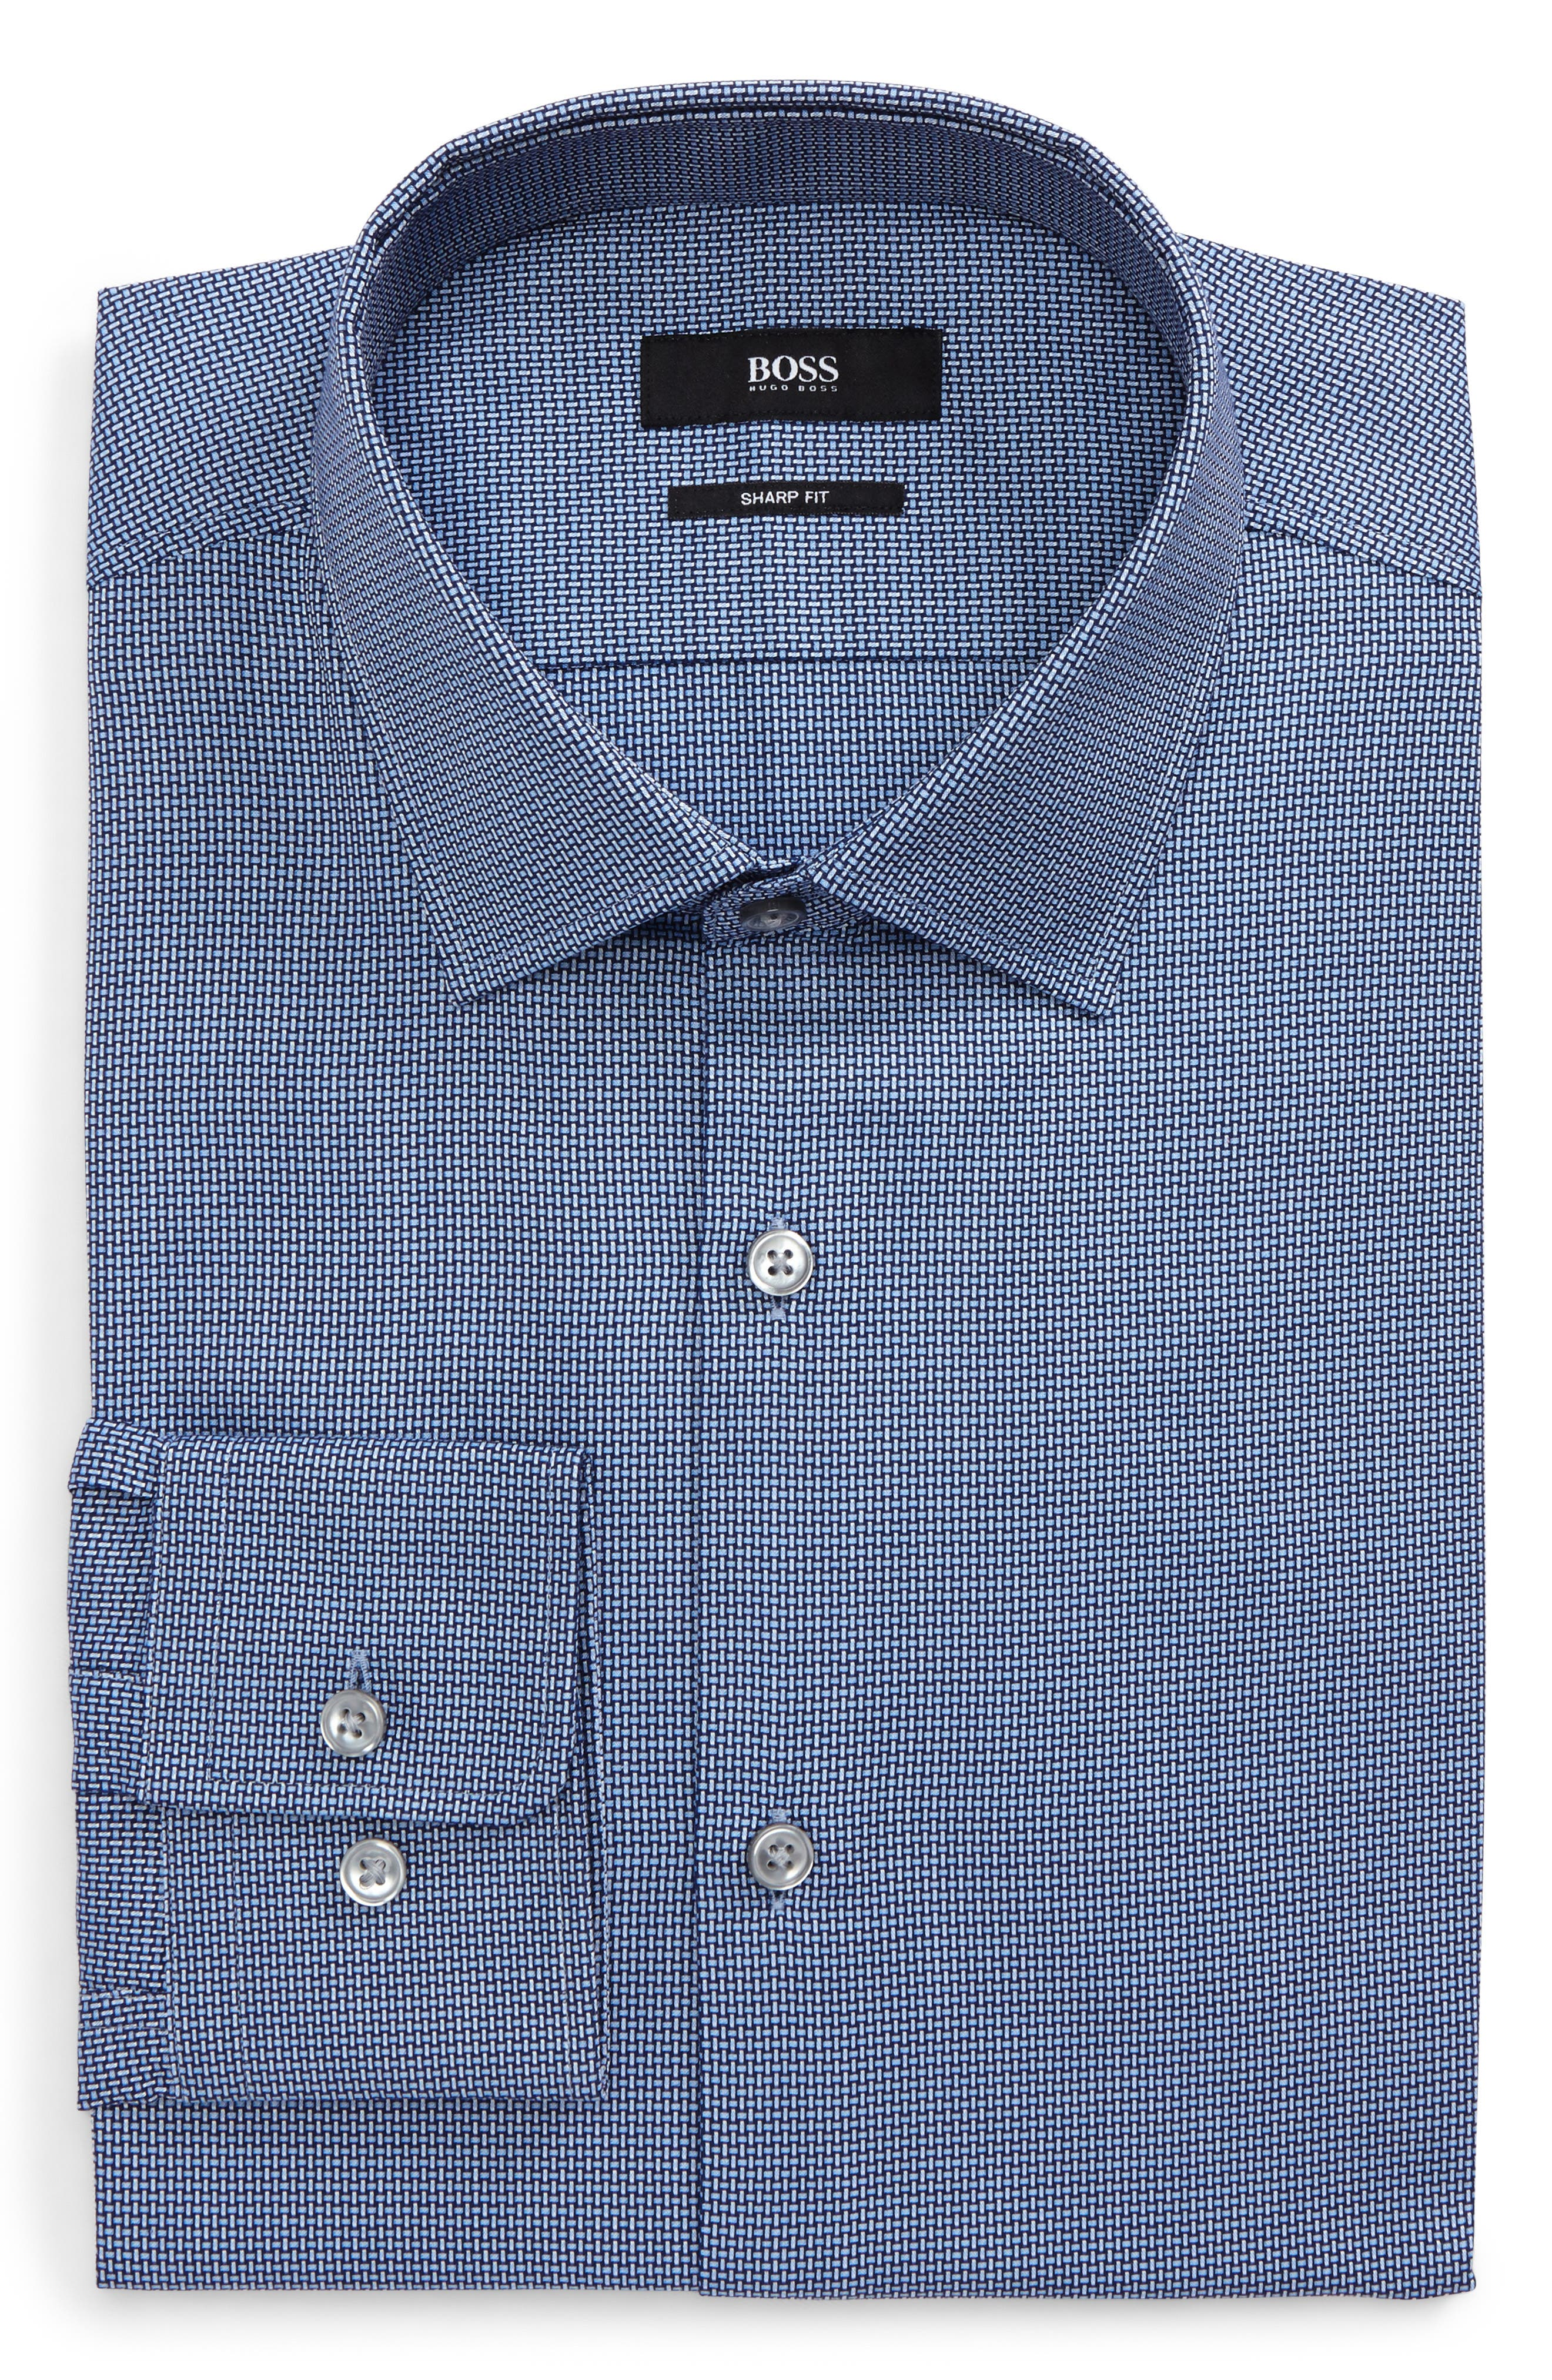 Marley Sharp Fit Solid Dress Shirt,                         Main,                         color, Navy